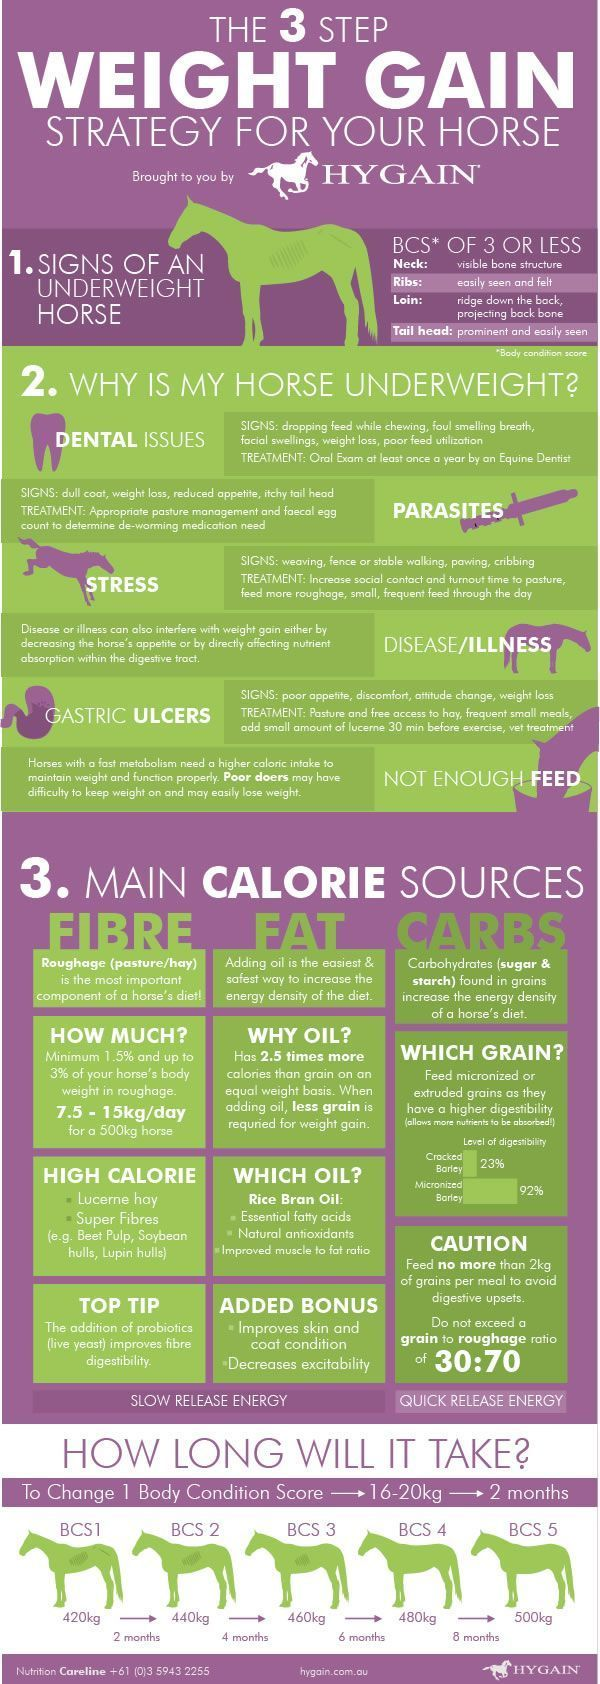 Horse health fact sheet** Many of our horses unfortunately struggle to gain weight or keep the weight on, especially throughout winter with decreasing temperatures. This quick reference fact sheet gives you a three step strategy to get the weight back on your horse, including an analysis of your horse's current b...